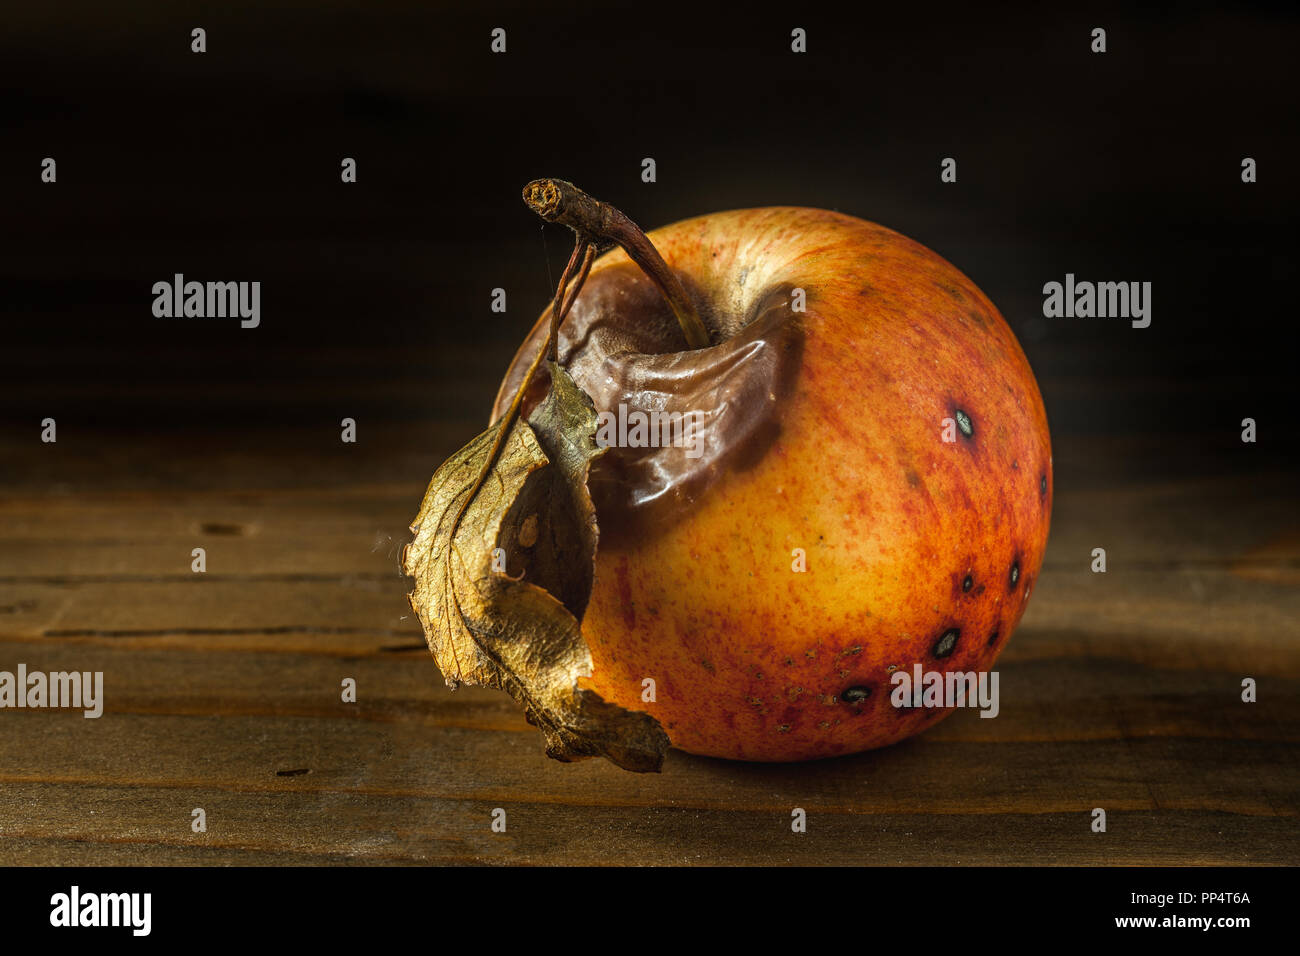 Genuine and organic rotten apples on a wooden table - Stock Image